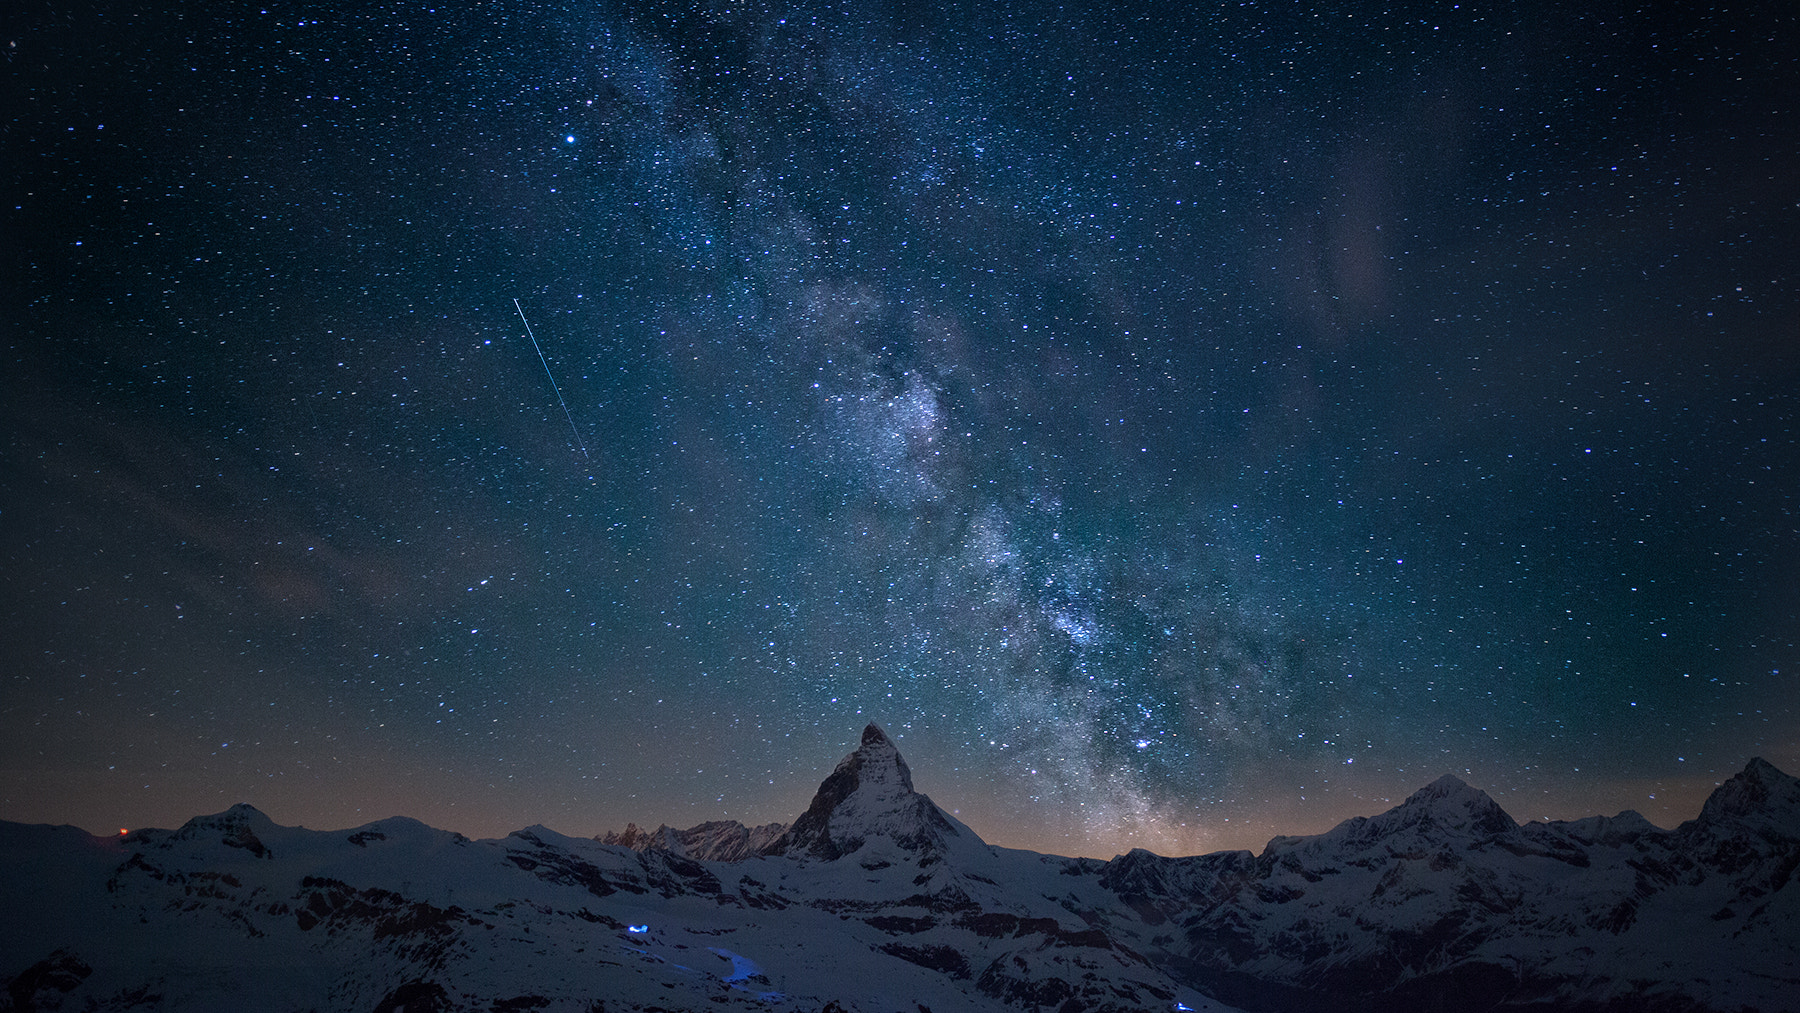 Photograph Milkyway over Matterhorn by Thomas Fliegner on 500px